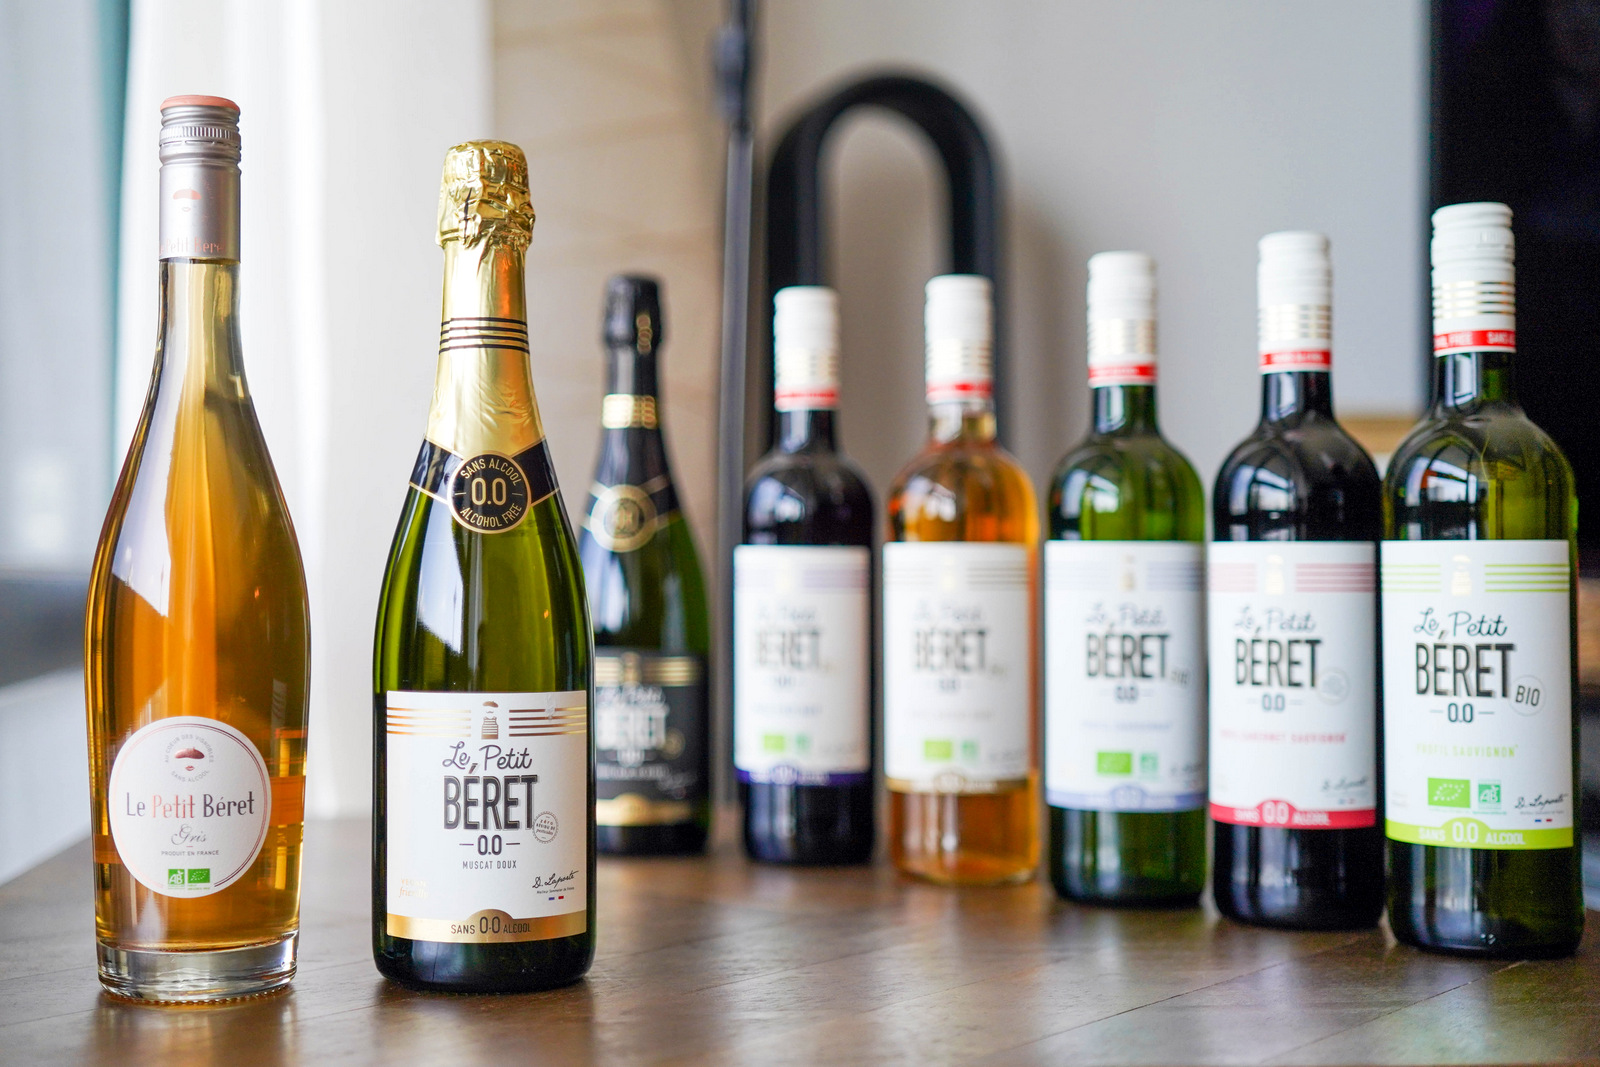 le petit beret: innovative non-alcoholic beverages, from the grapevines of france to the gourmets of malaysia